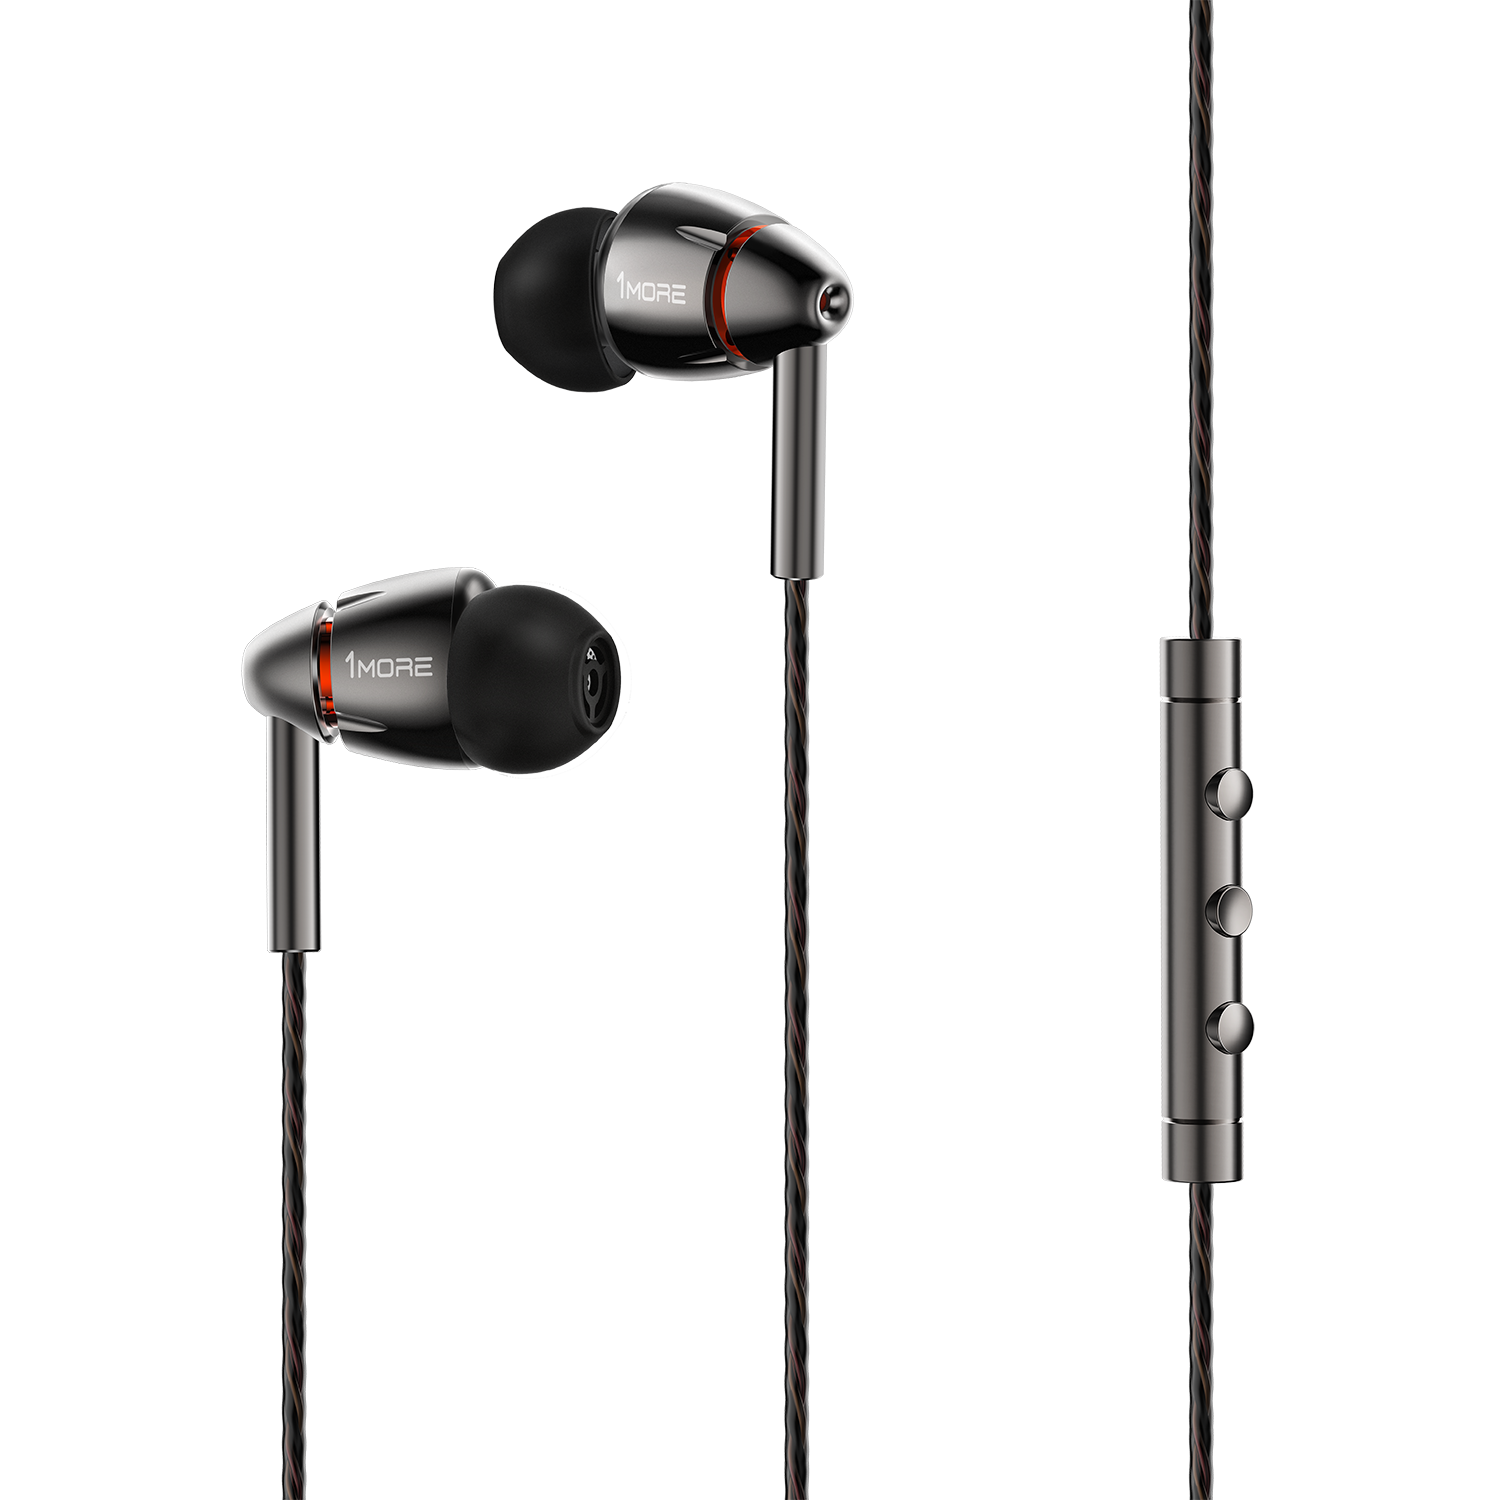 1MORE Quad Driver In Ear Headphones